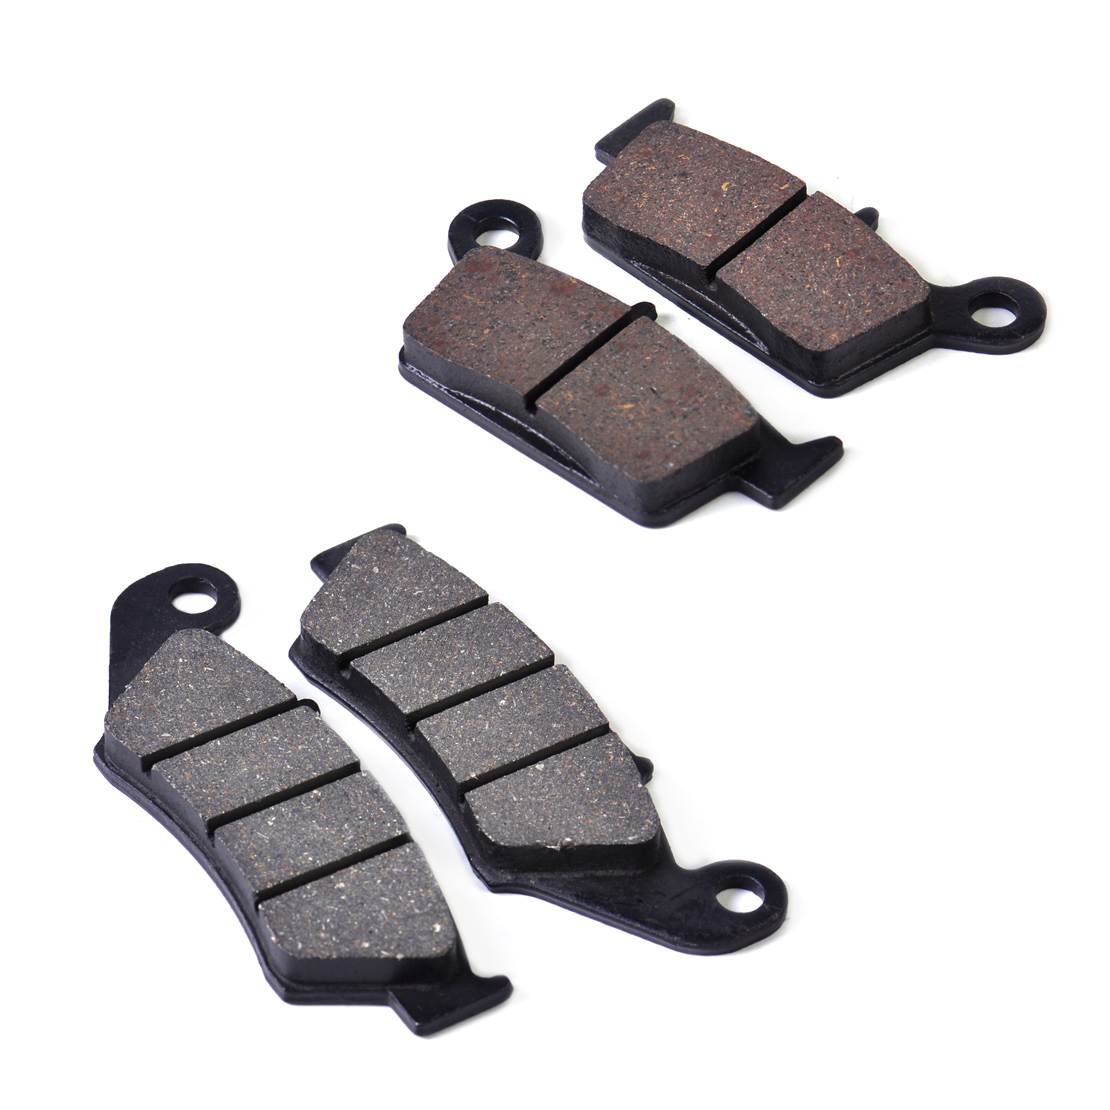 Details about Fit for Suzuki RM125 RM250 Honda XR250R Yamaha YZ125 2pcs  Front+Rear Brake Pads